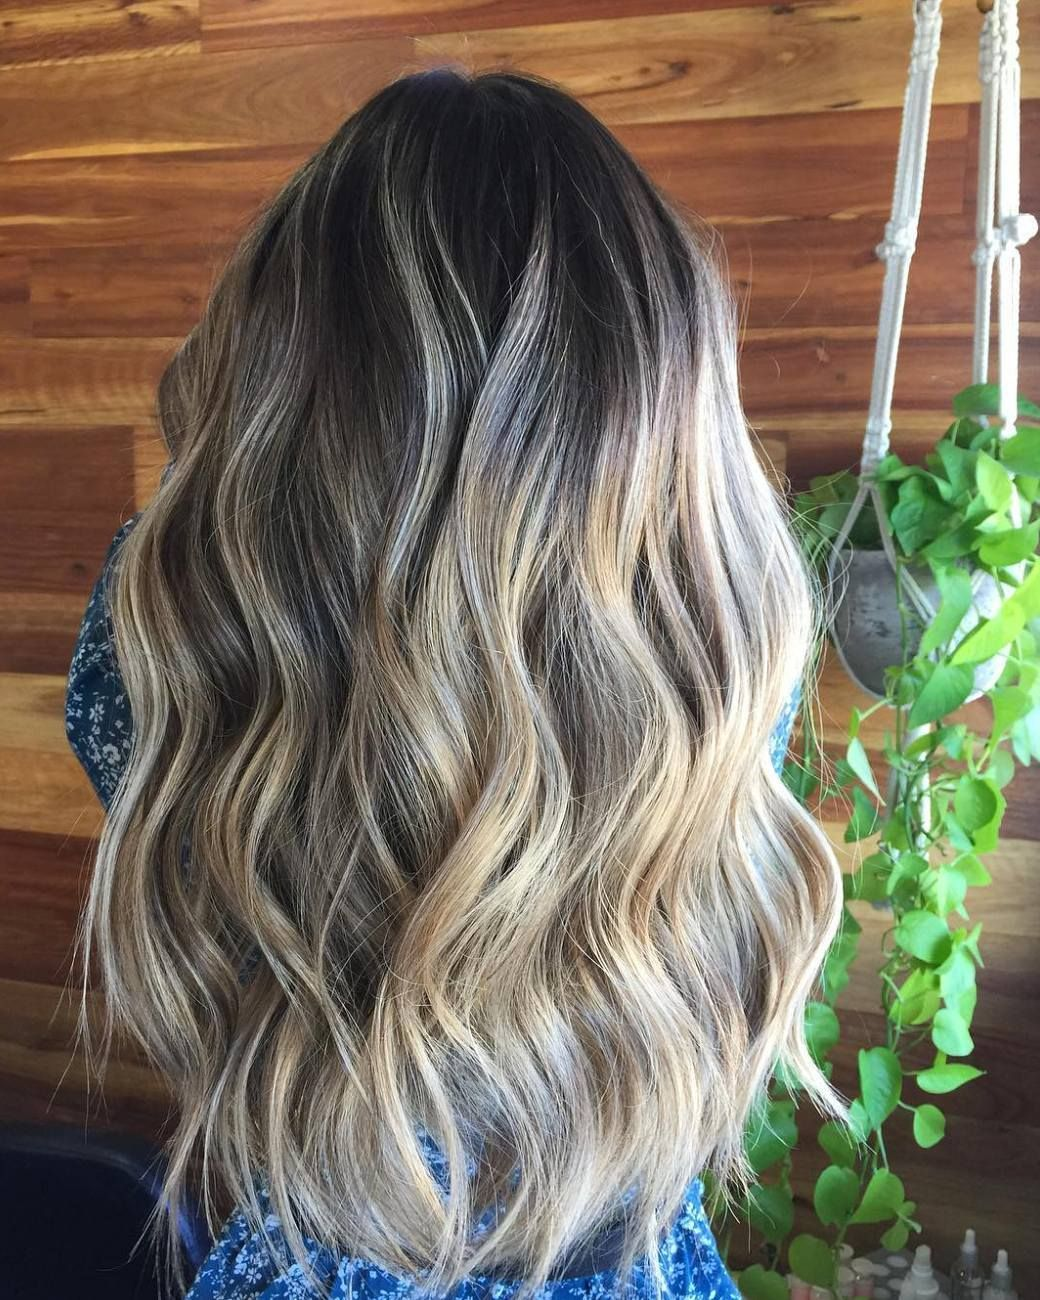 We're loving this lush colour by @siobhan_edwardsandco! She is now back in the Salon - email buddsbeach@edwardsandco.com.au to make your booking with her.  #edwardsandco #edwardsandcobuddsbeach